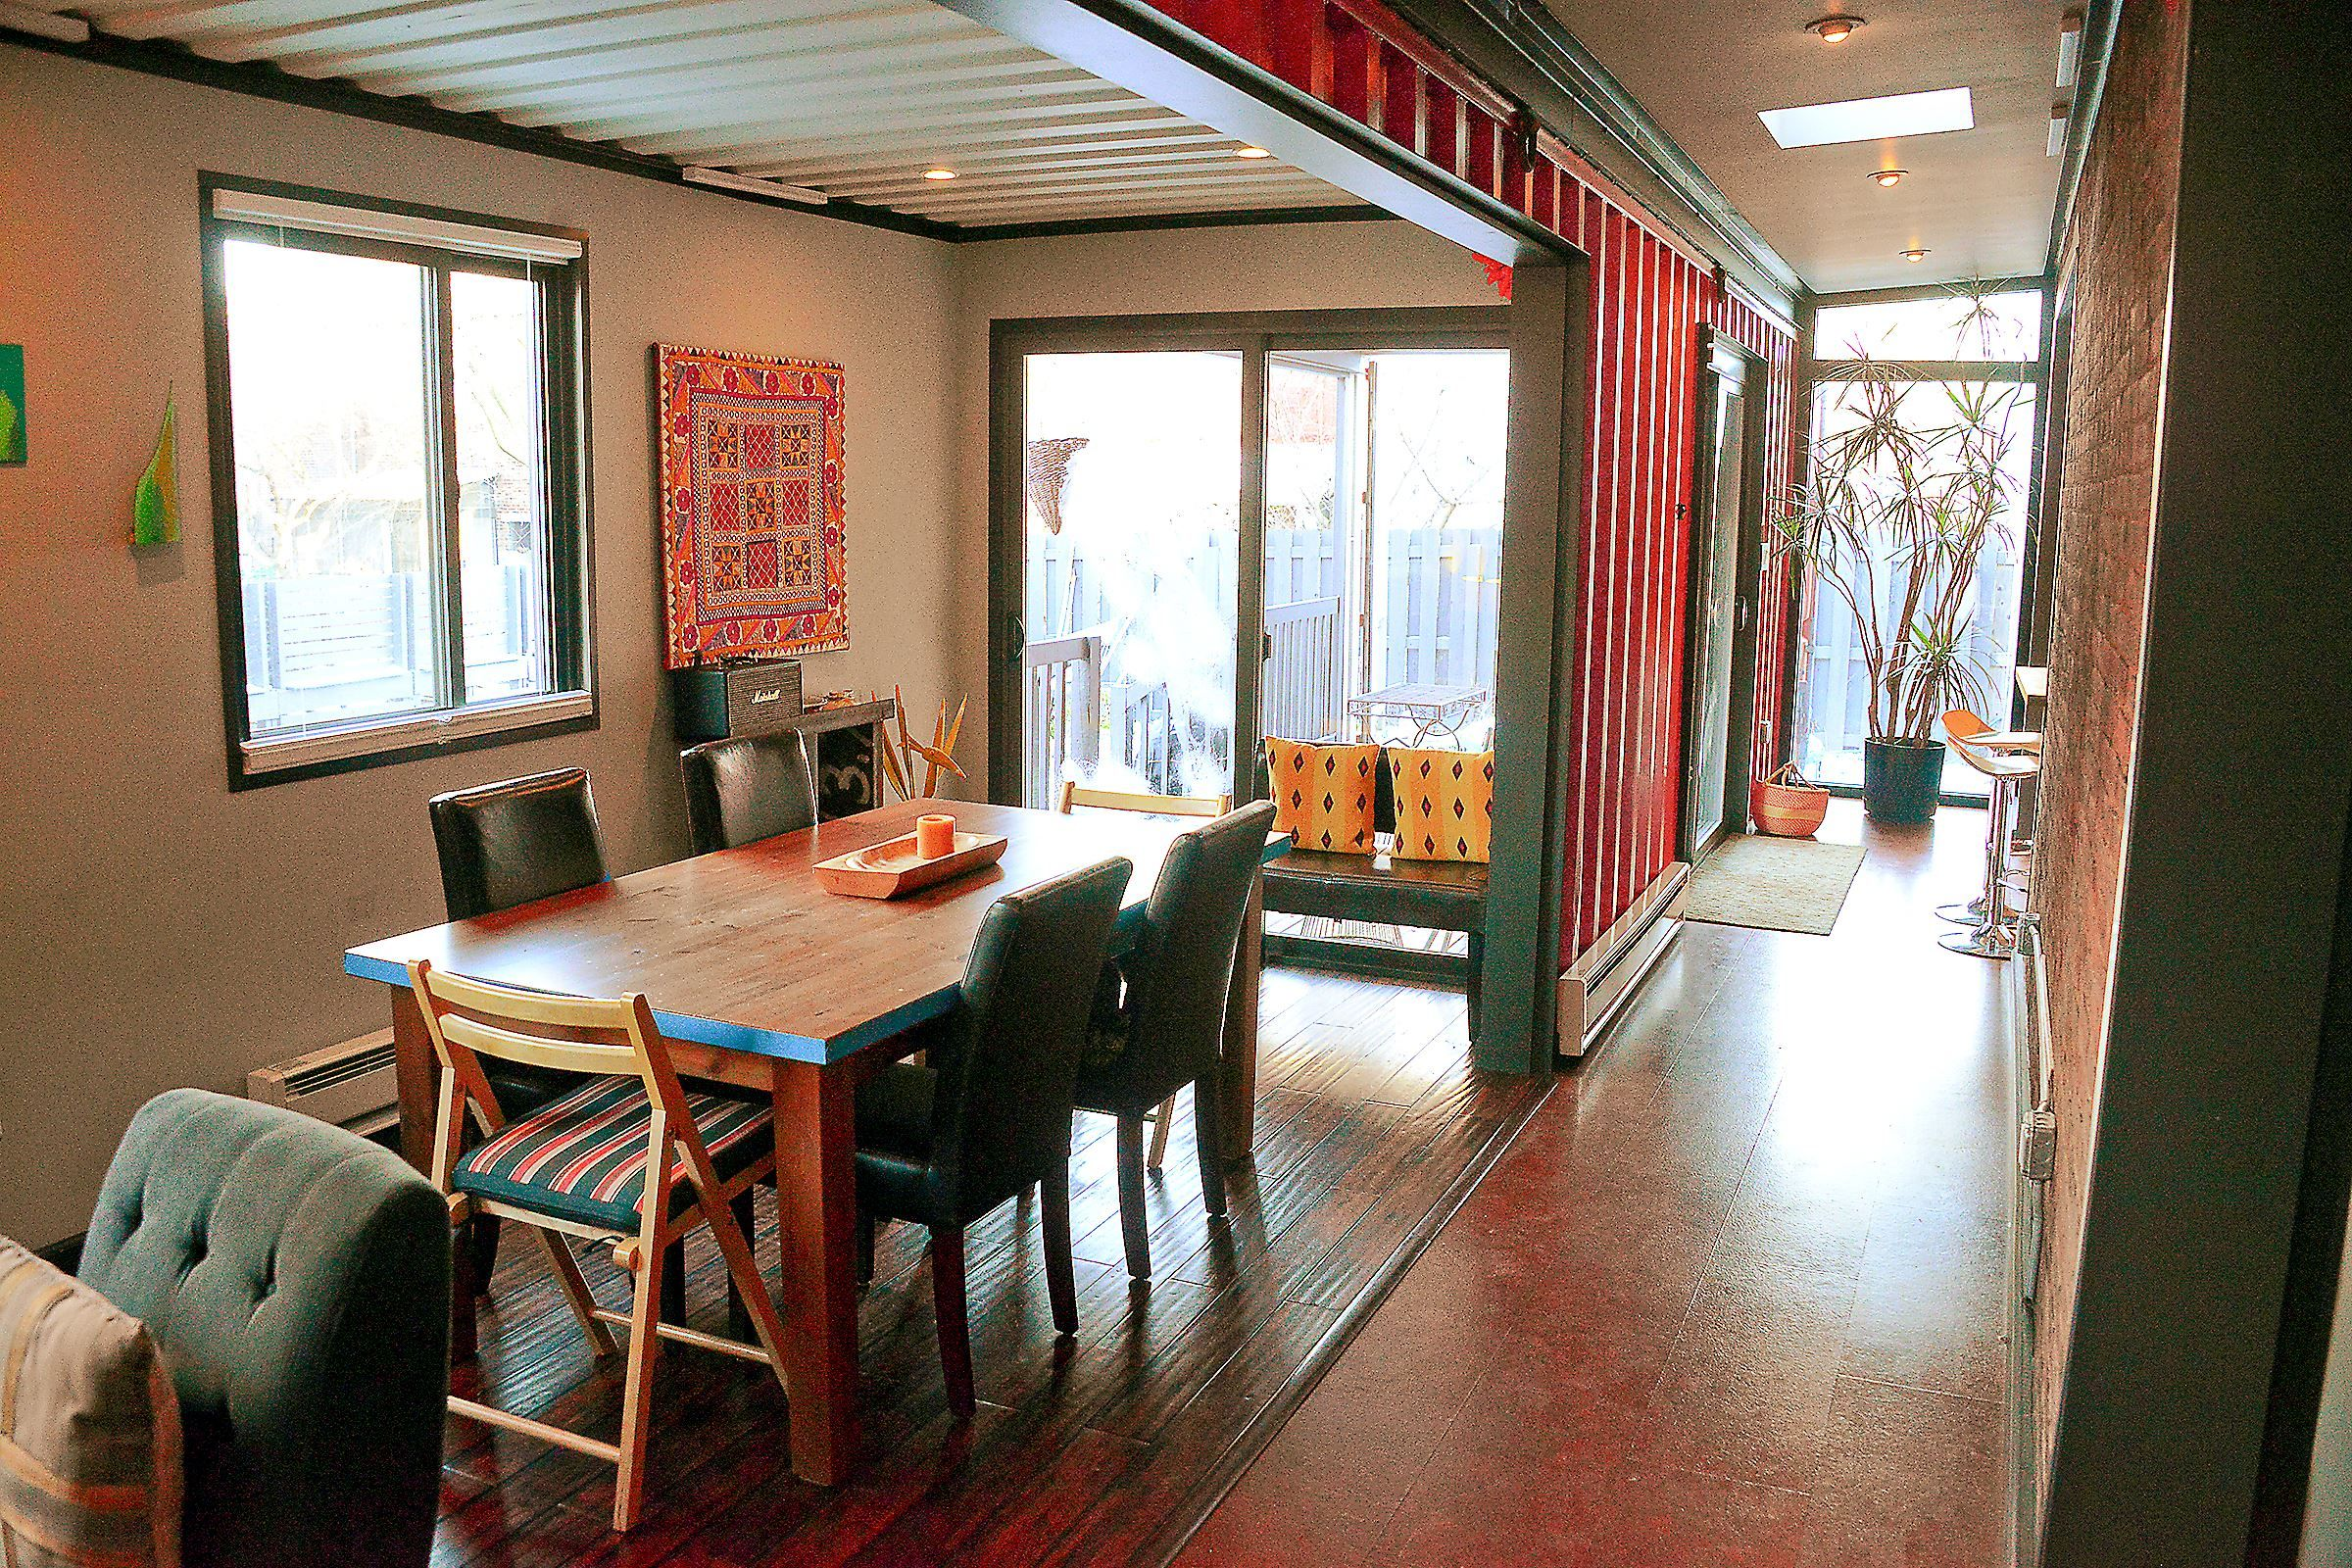 Shipping Container Becomes Addition On Lawrenceville Row House